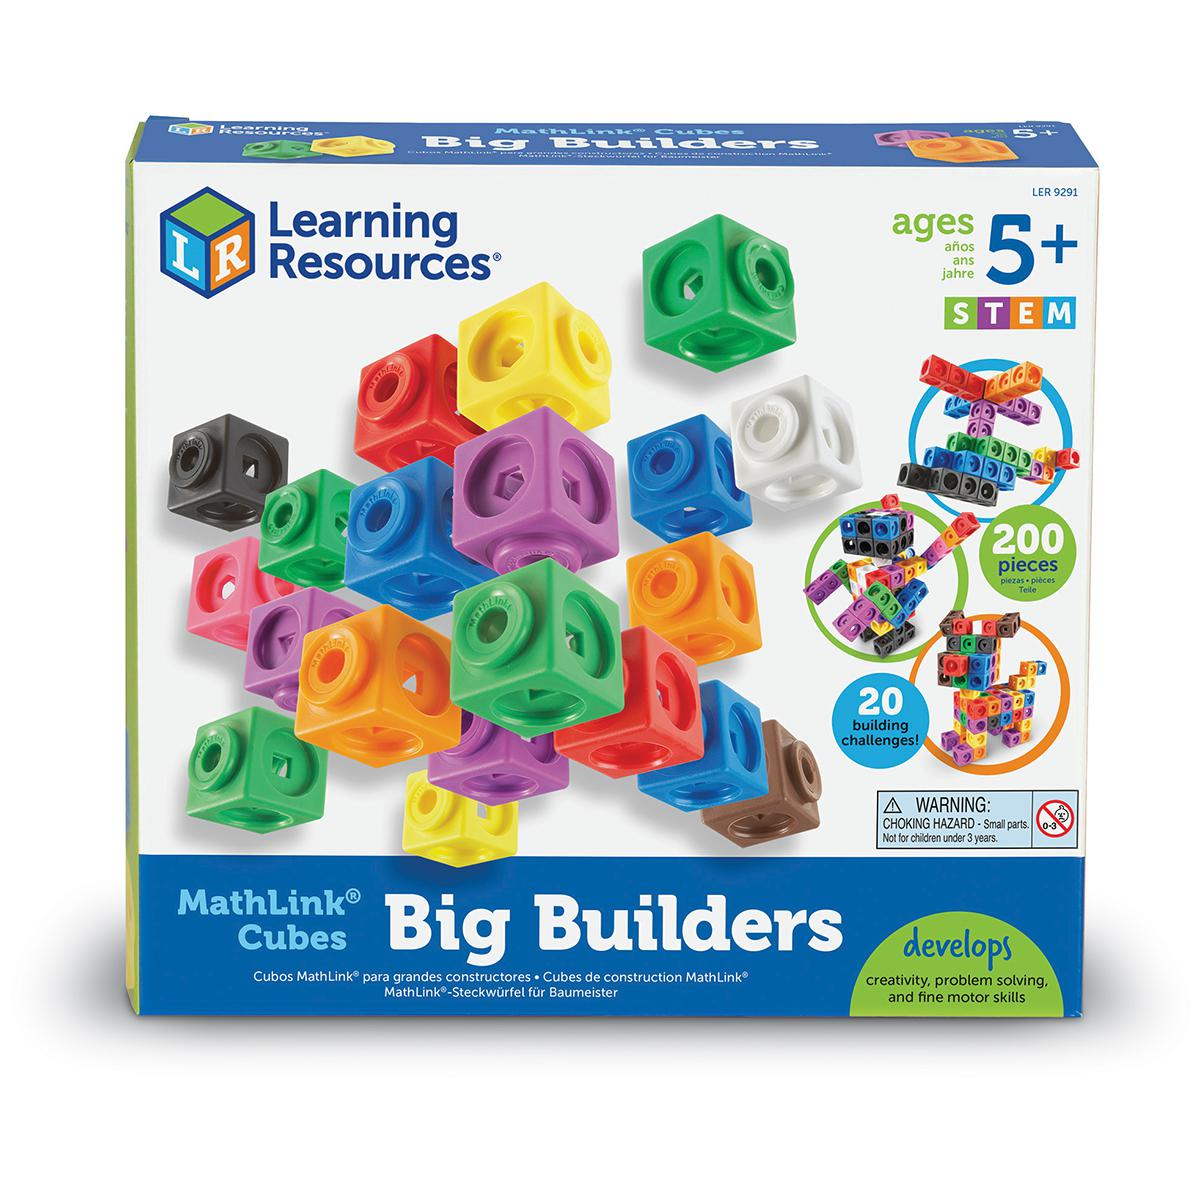 MathLink® Cubes: Big Builders